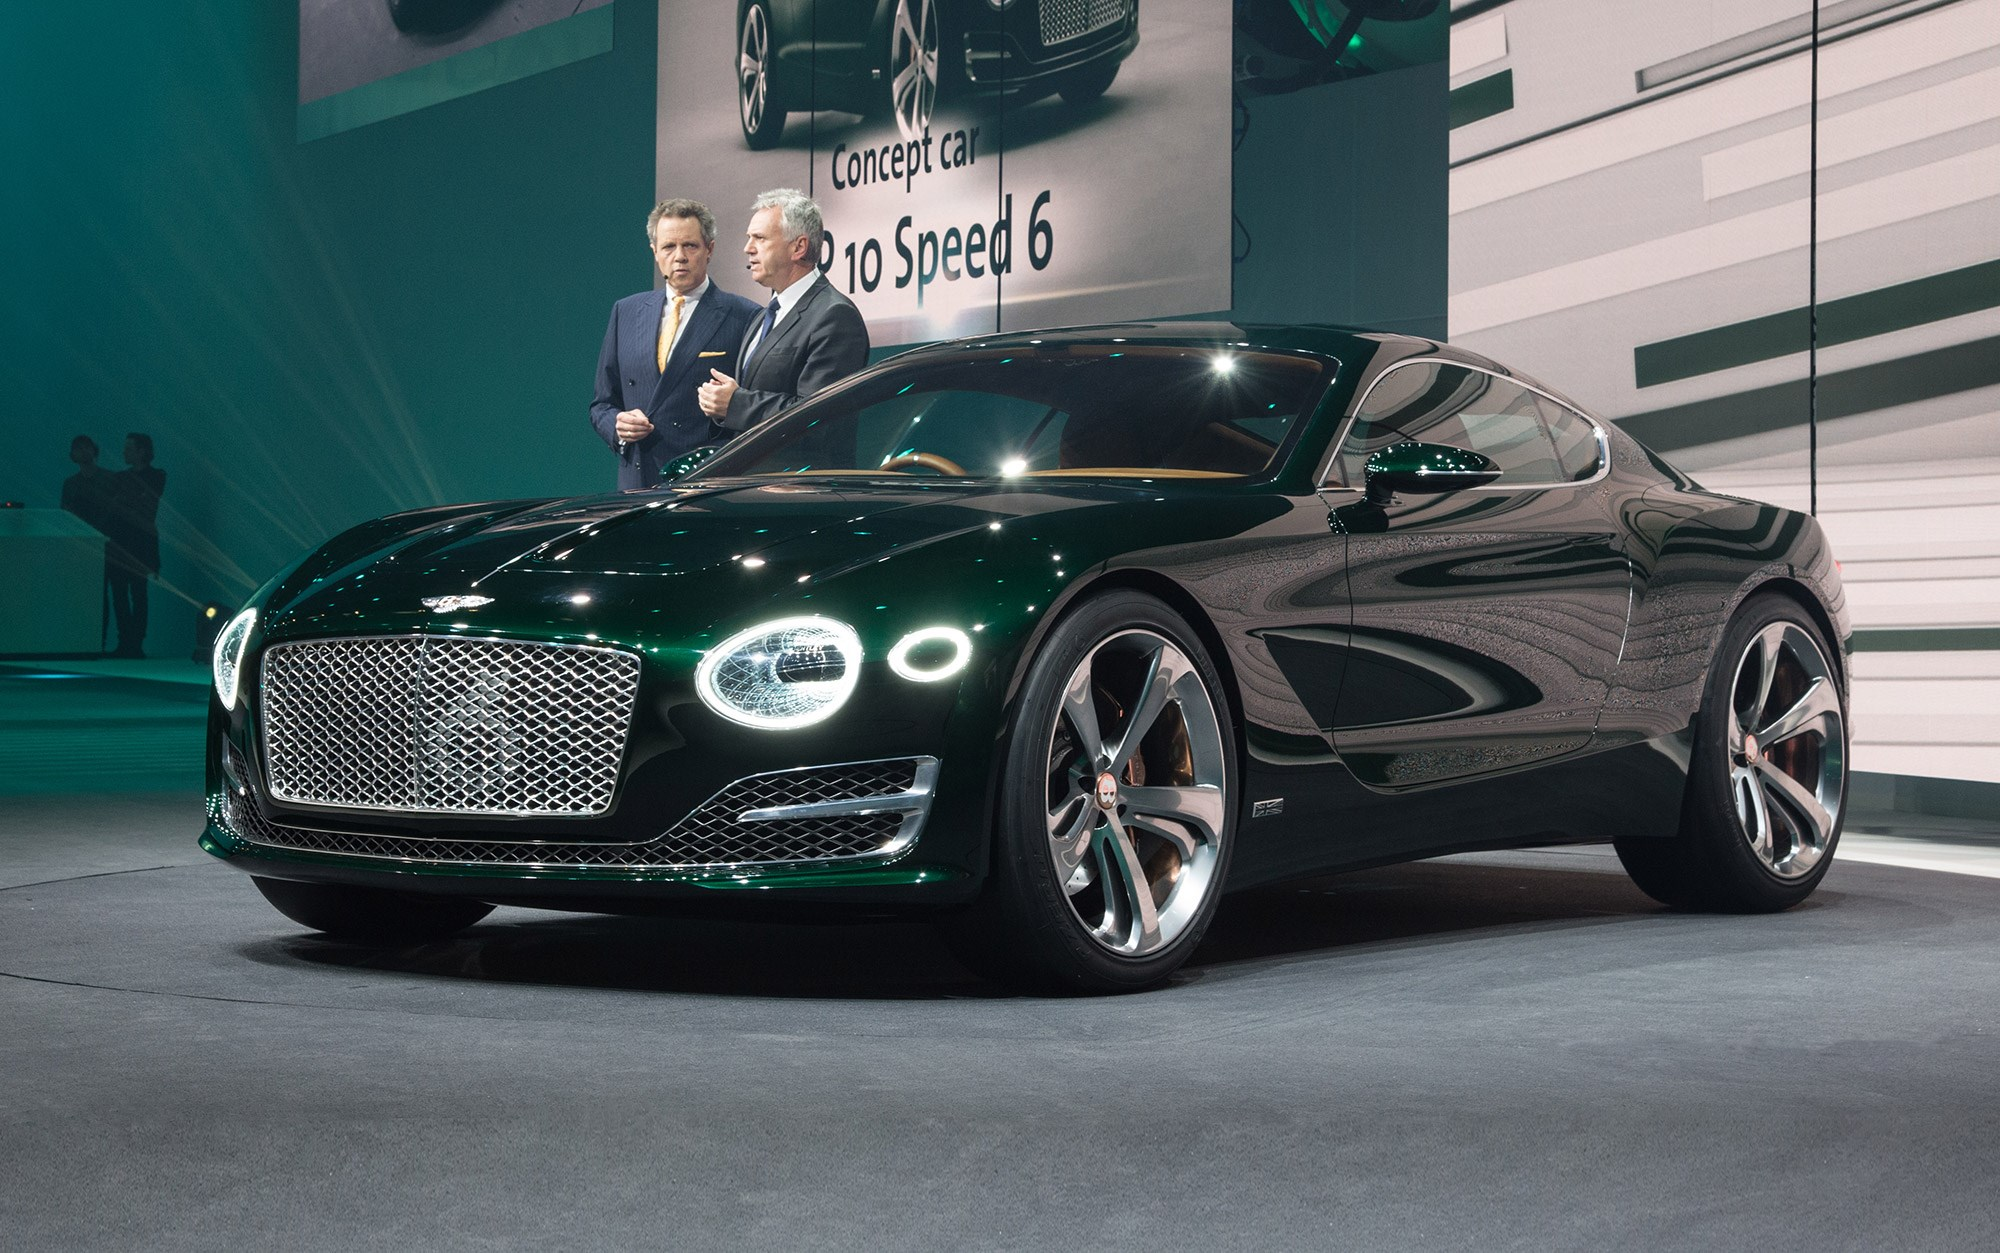 Bentley top brass reveal the exp 10 speed 6 at geneva